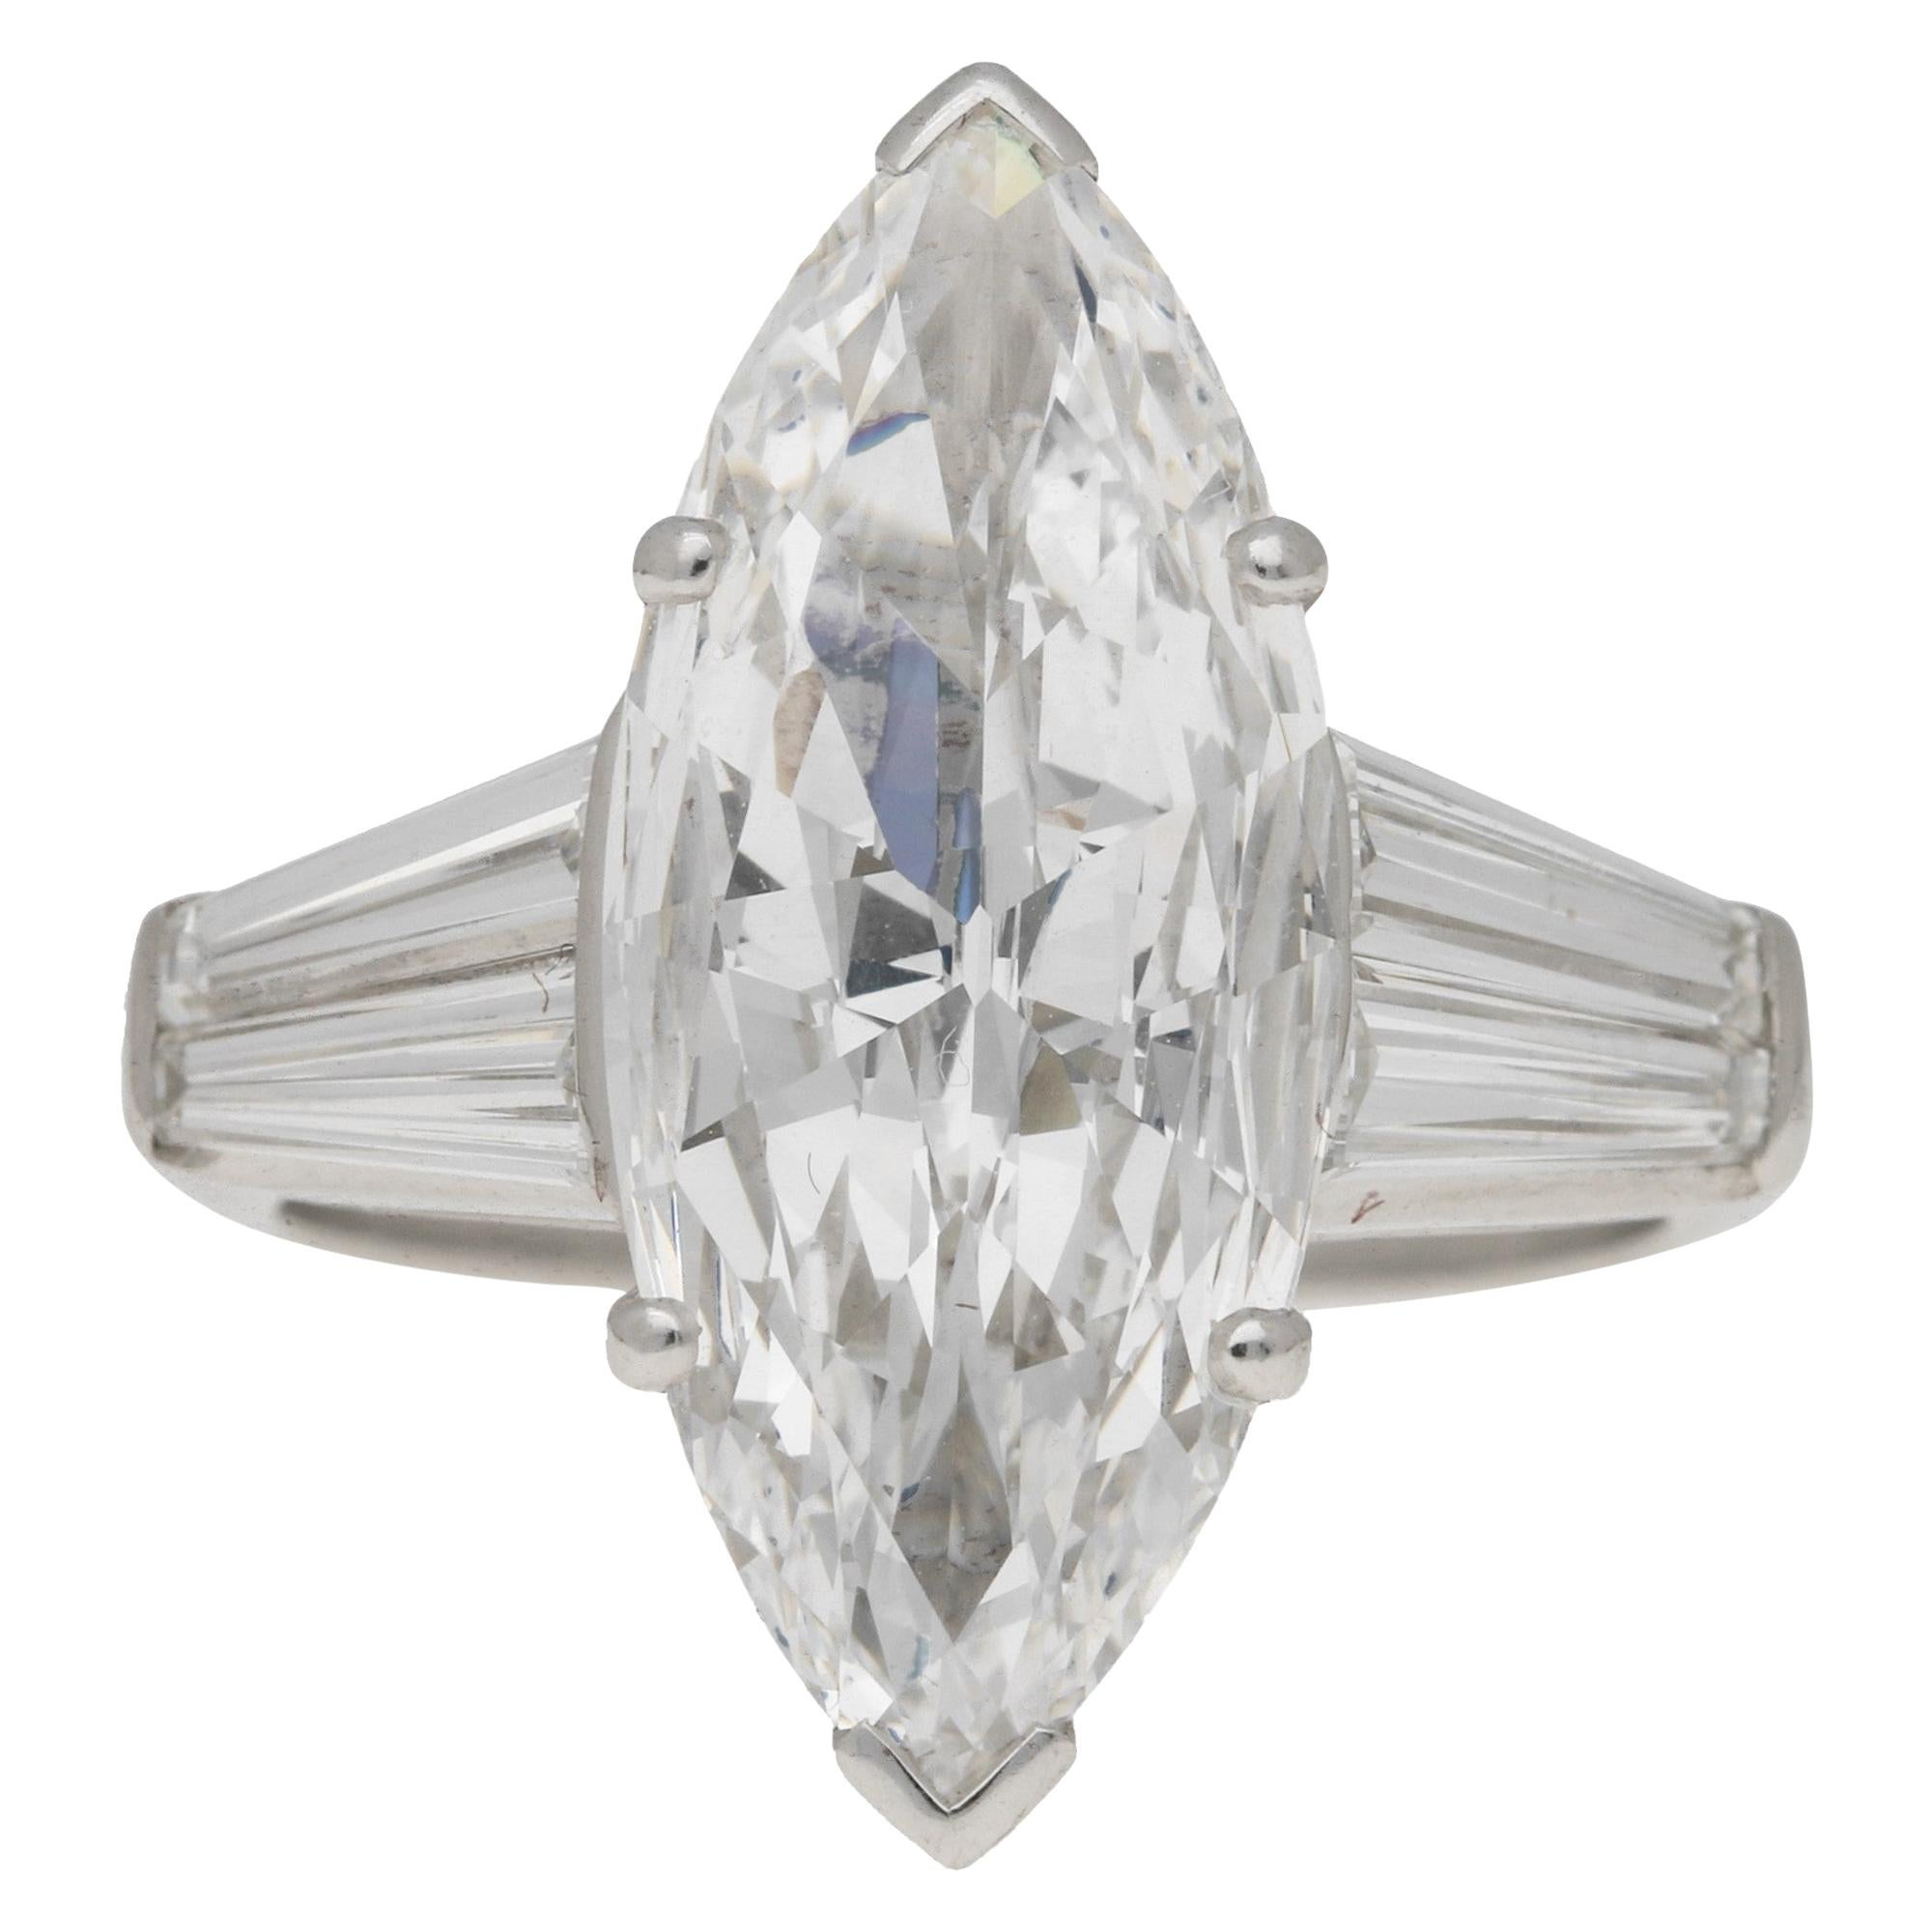 GIA Certified Art Deco Style 4.13ct Internally Flawless Marquise Diamond Ring